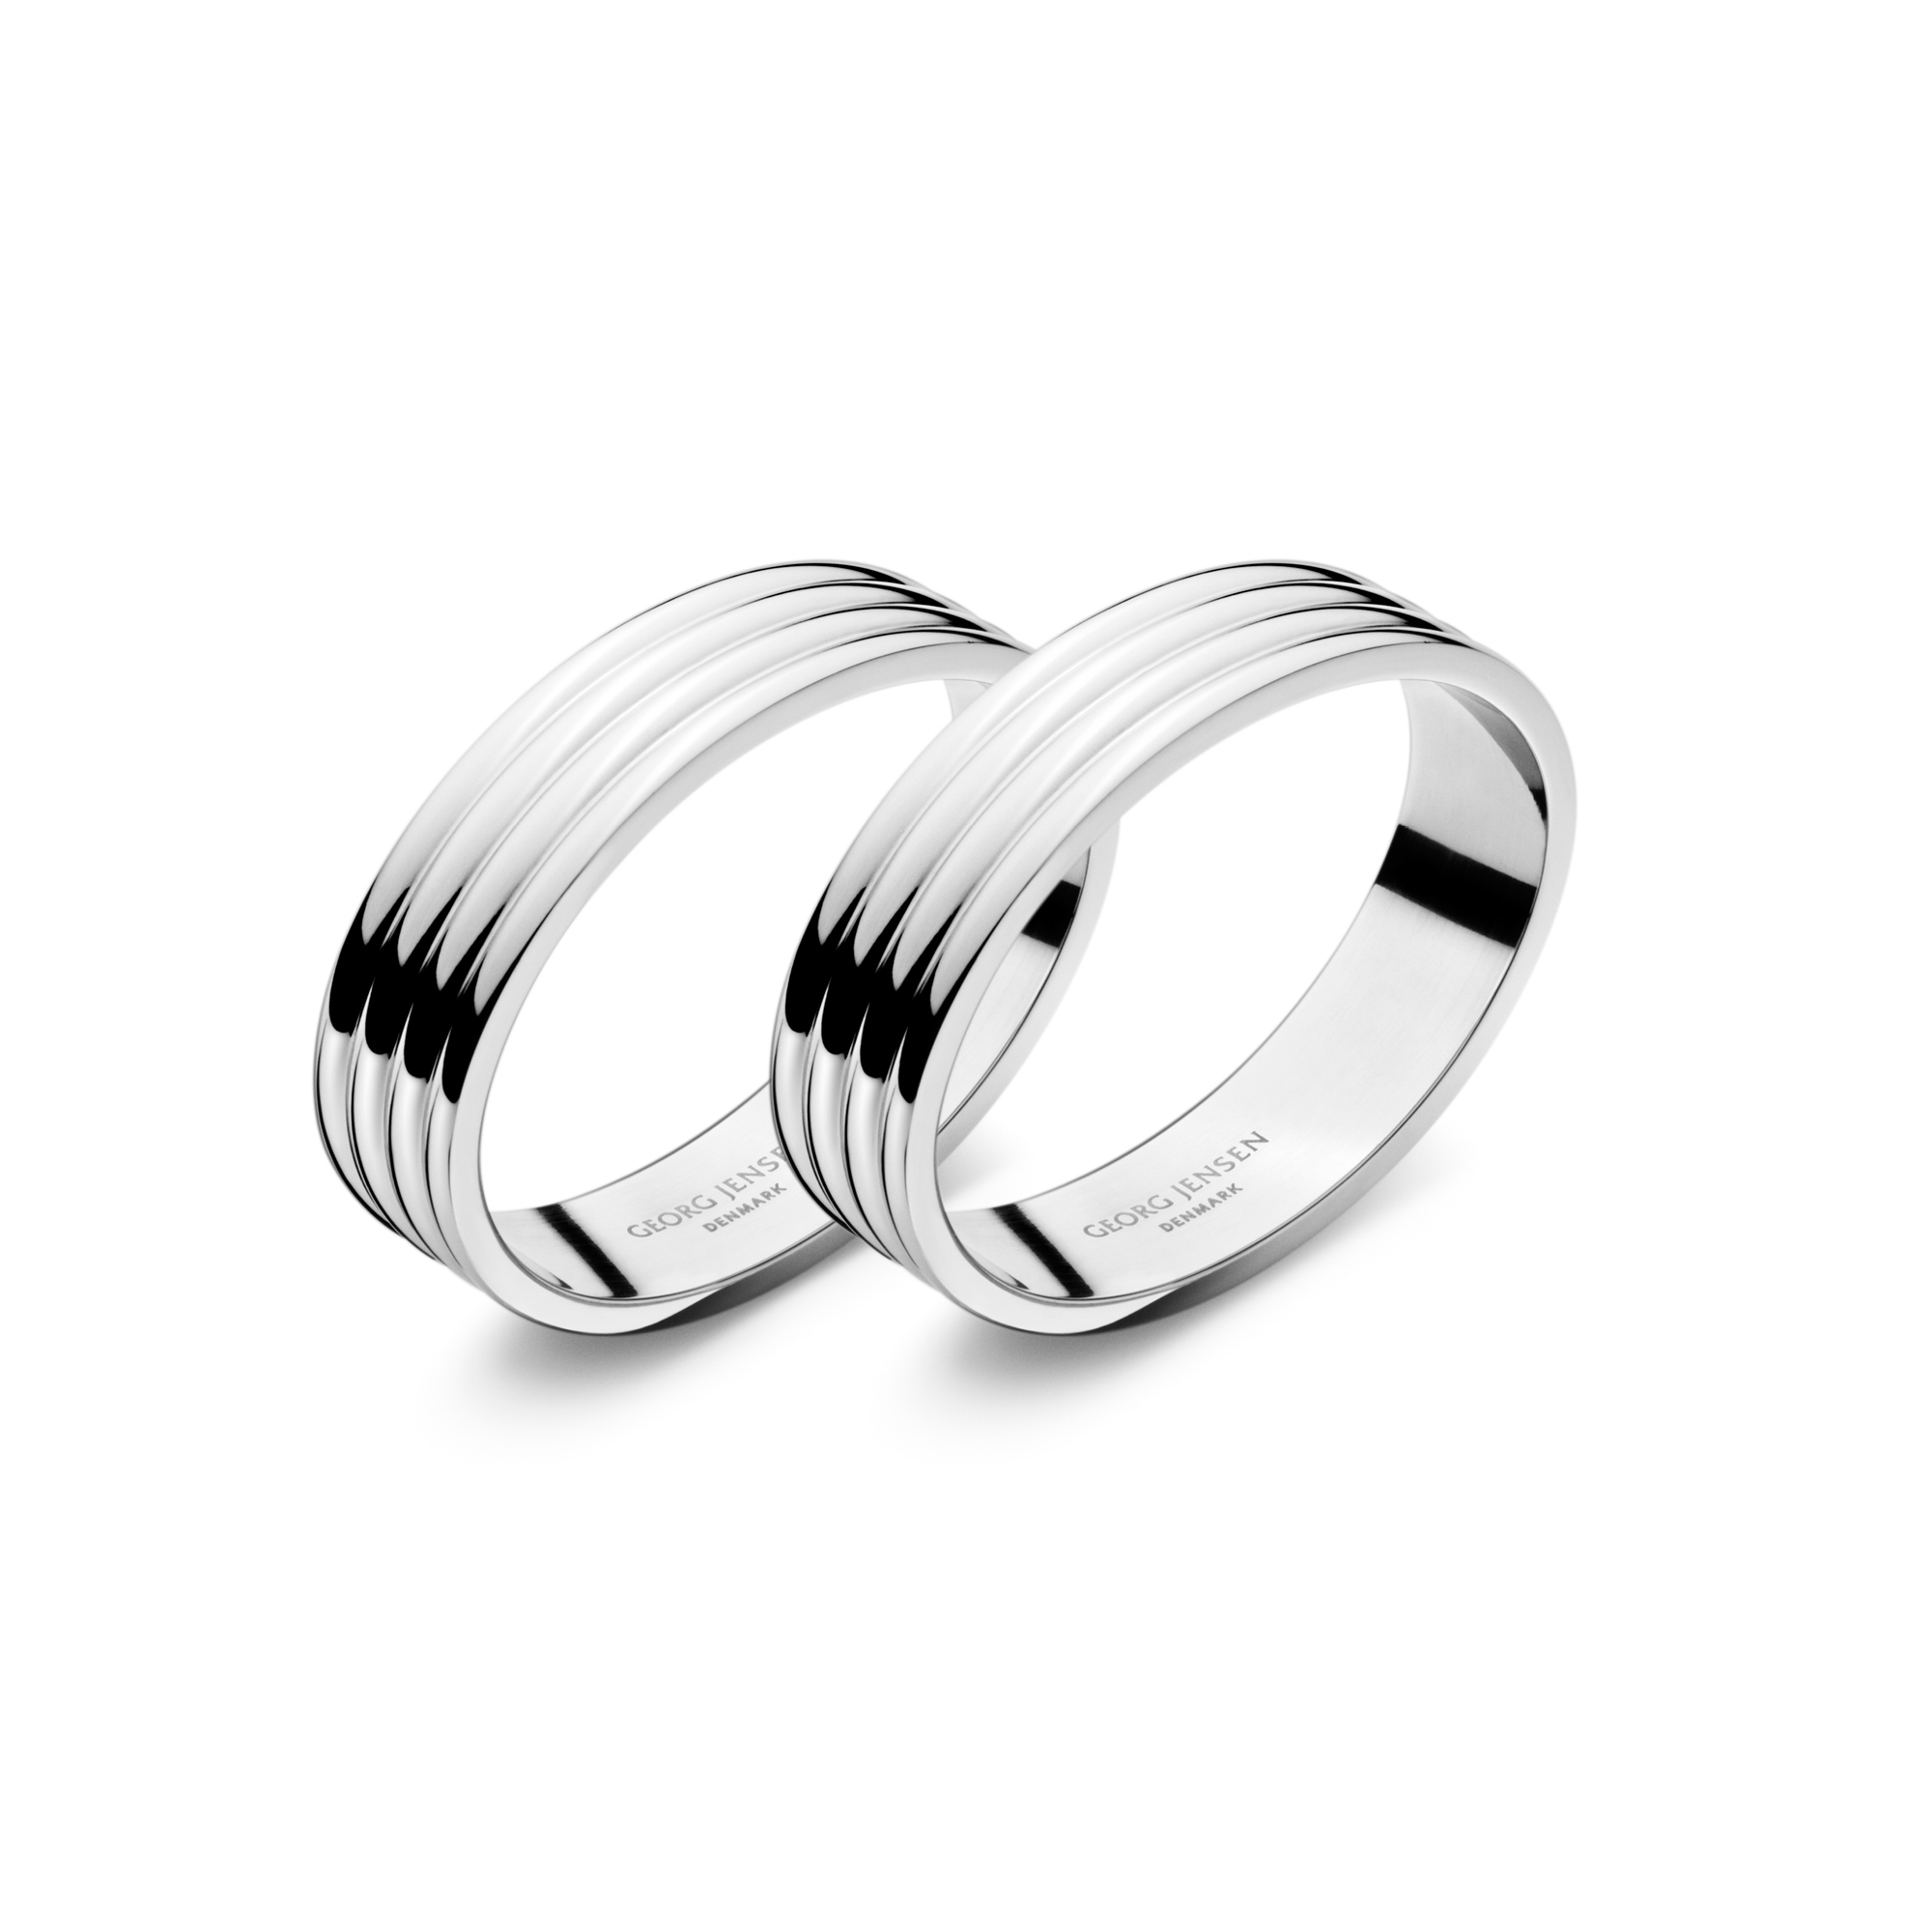 Georg Jensen Bernadotte Stainless Napkin Rings, Set of 2